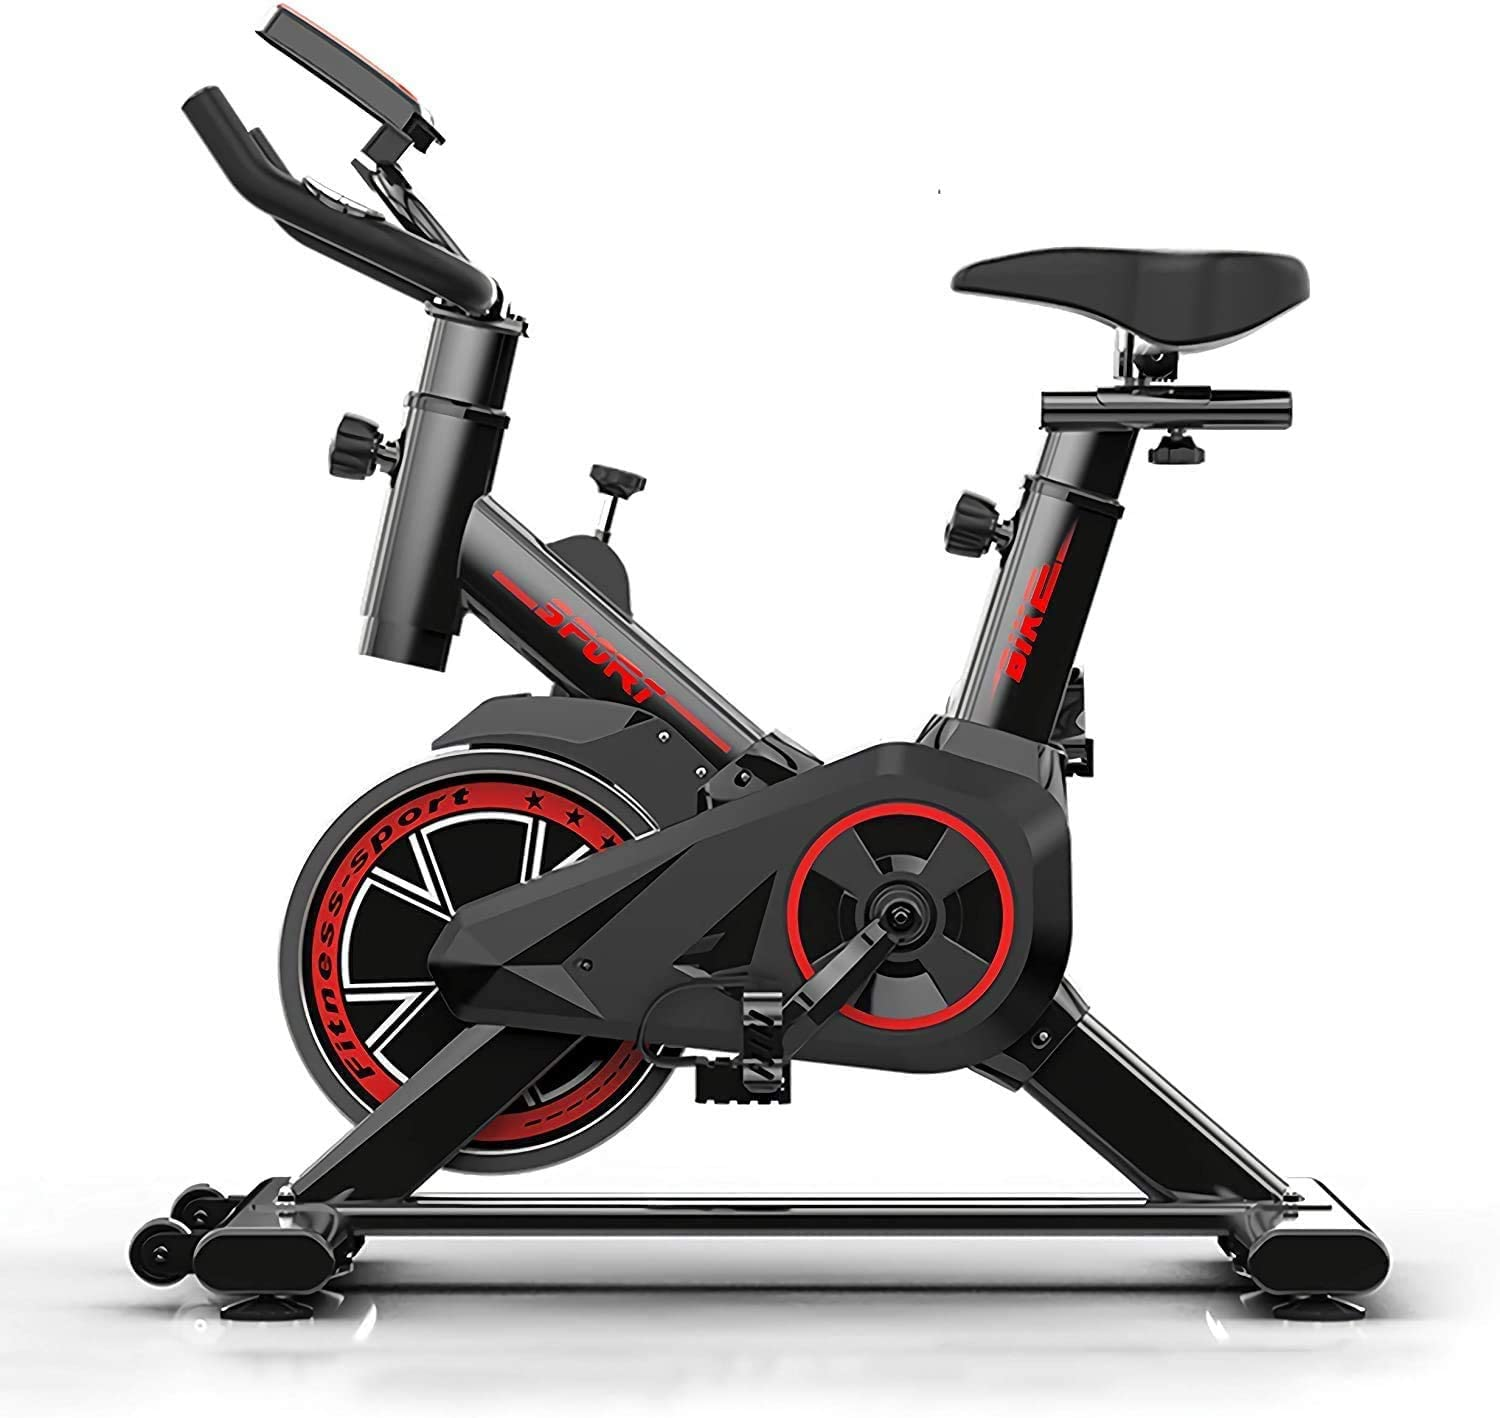 Ultra-quiet Indoor Sports Fitness Equipment Home Exercise Bike High Quality Indoor Cycling Bikes Load Spinning Bicycle Exerciser